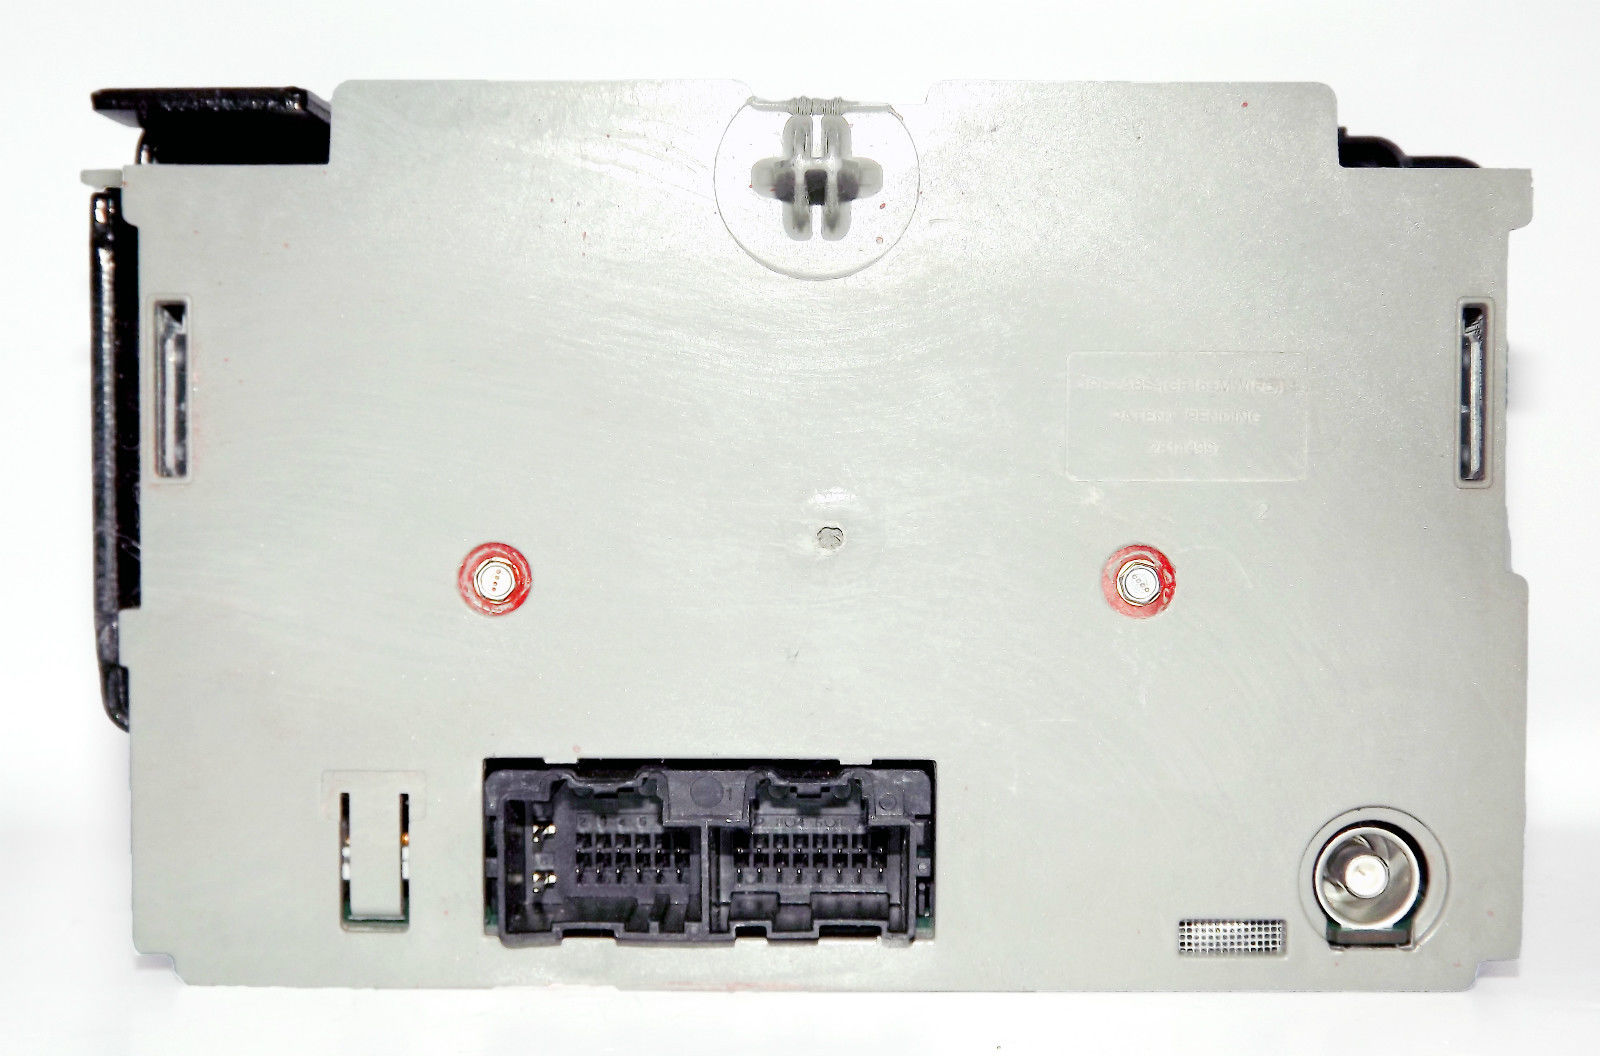 GM Chevy Truck Radio 07-14 CD Aux Input 20934592 Plastic Chassis Ver Code  Clear - Refurbished - Walmart.com